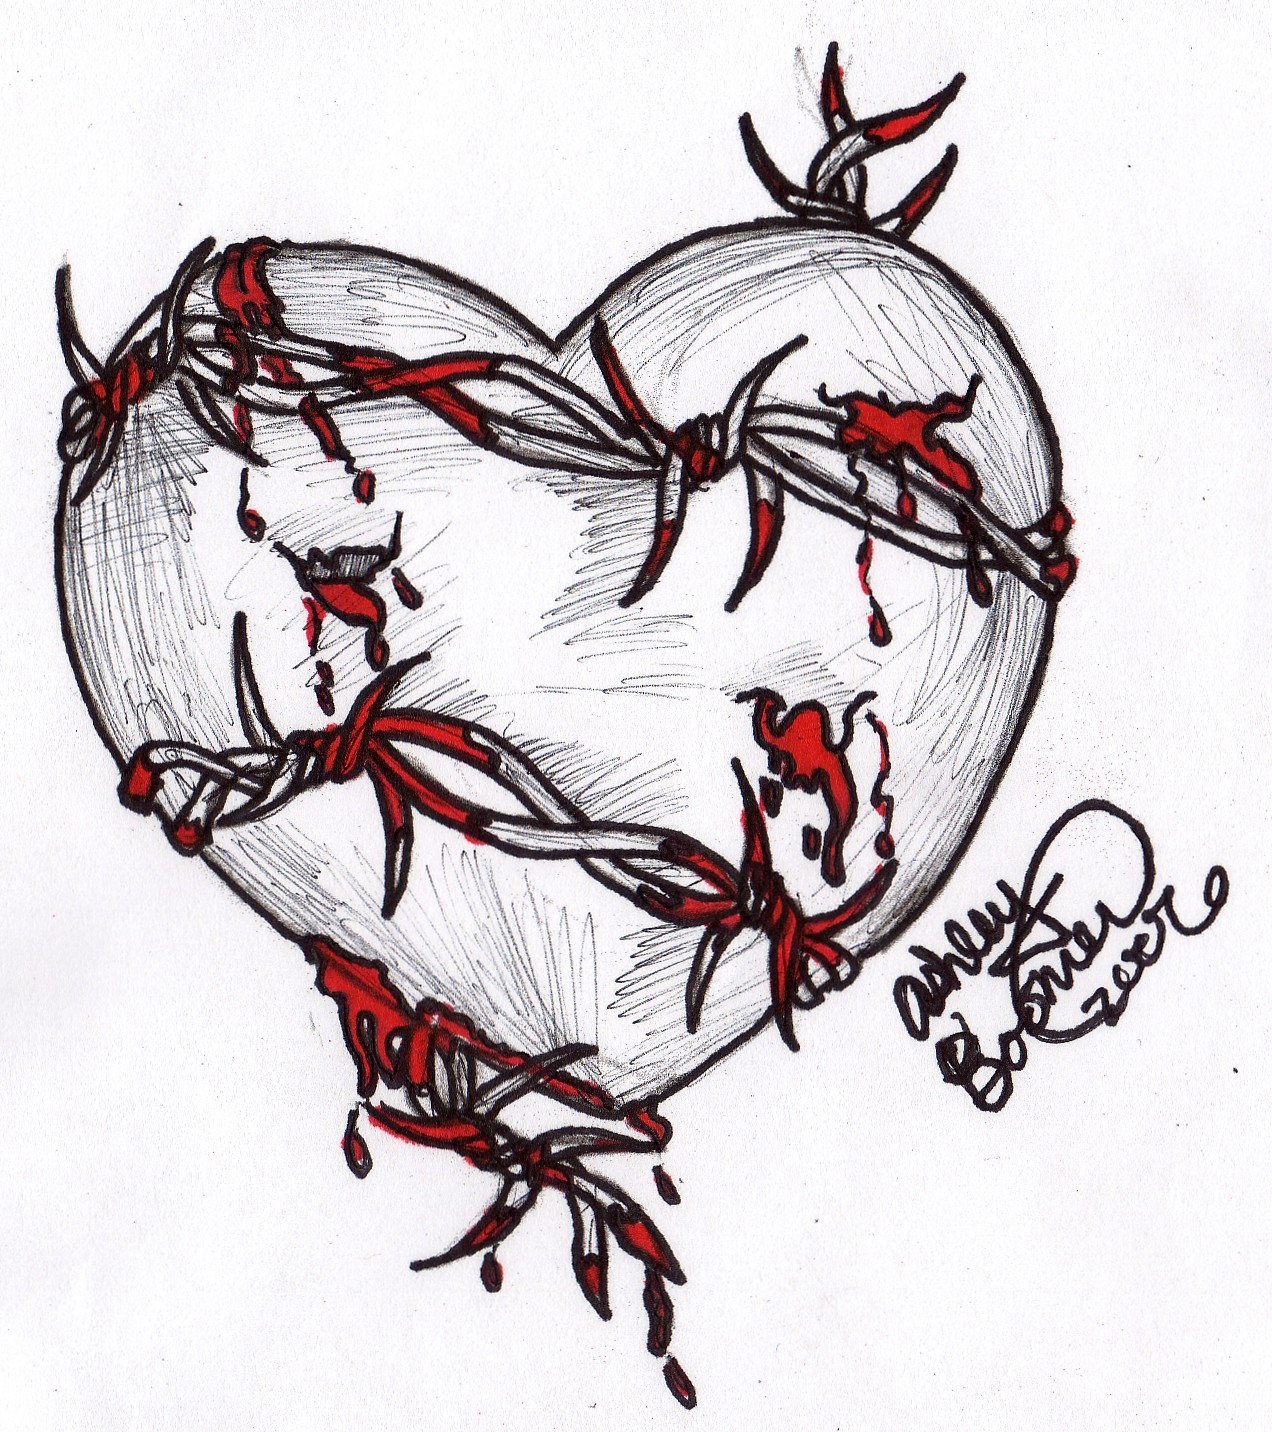 Drawn hearts barbed wire Barbed Barbed Boomboom34 by Heart